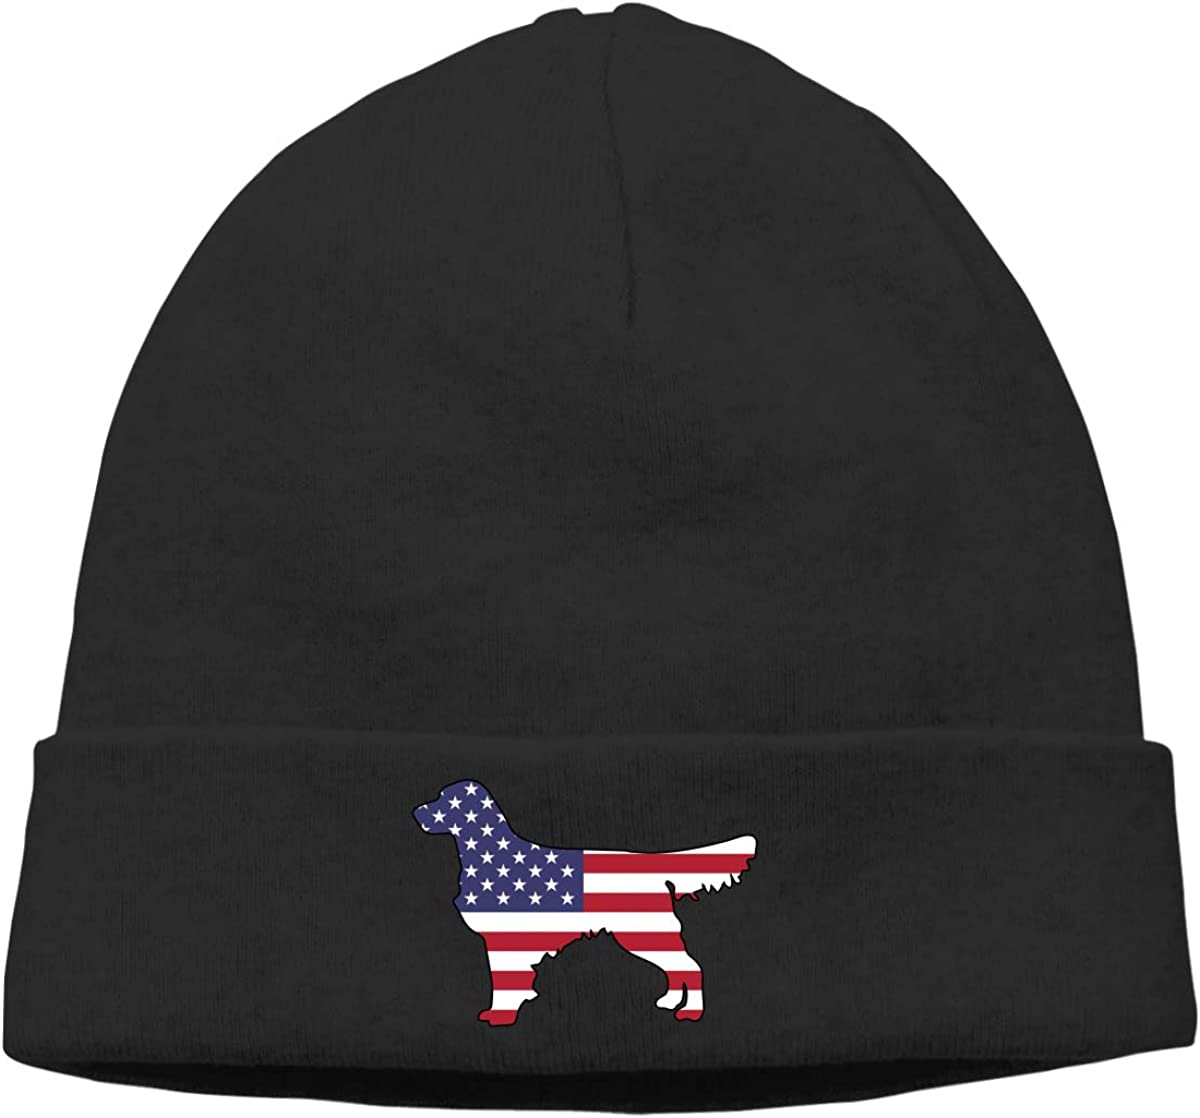 Stretchy /& Soft Winter Cap American Flag Golden Retriever Dogs Women Men Solid Color Beanie Hat Thin